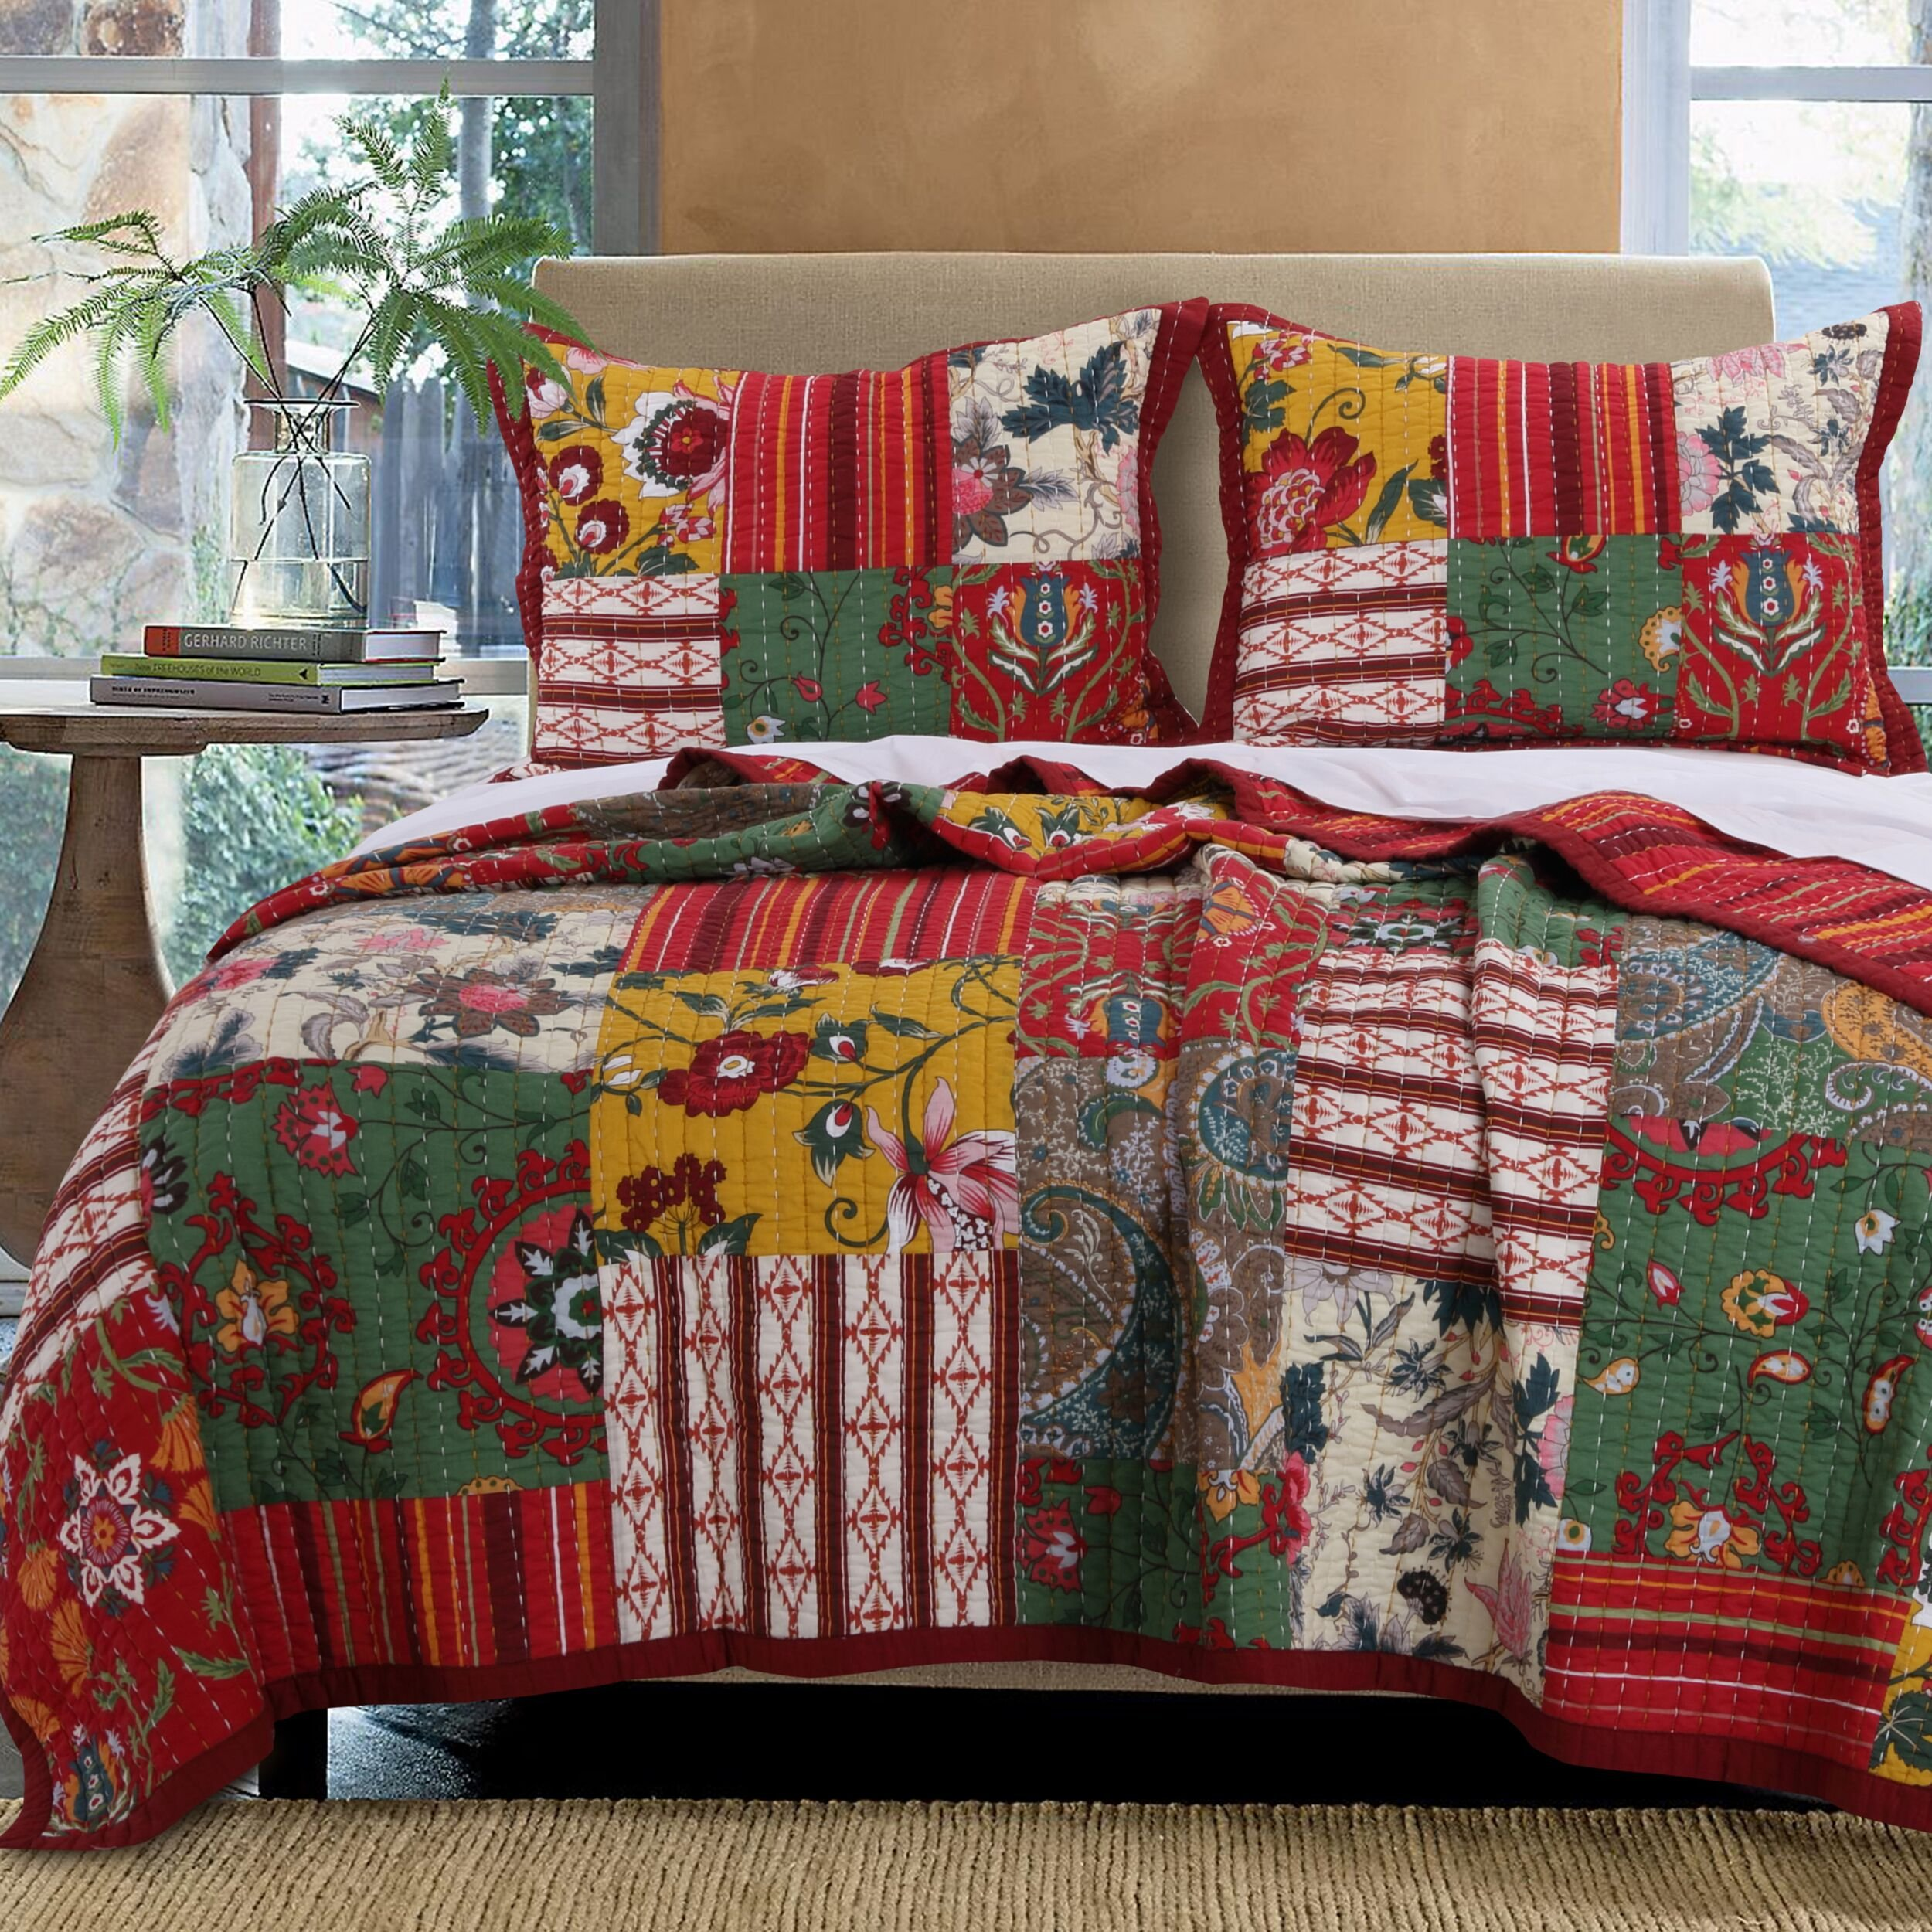 French Country Cottage Bedding Patchwork Stripe Floral Pattern Red Green Gold Luxury 100 Cotton Print Reversible Quilt 3 Piece Set with Shams King Size - Includes Bed Sheet Straps